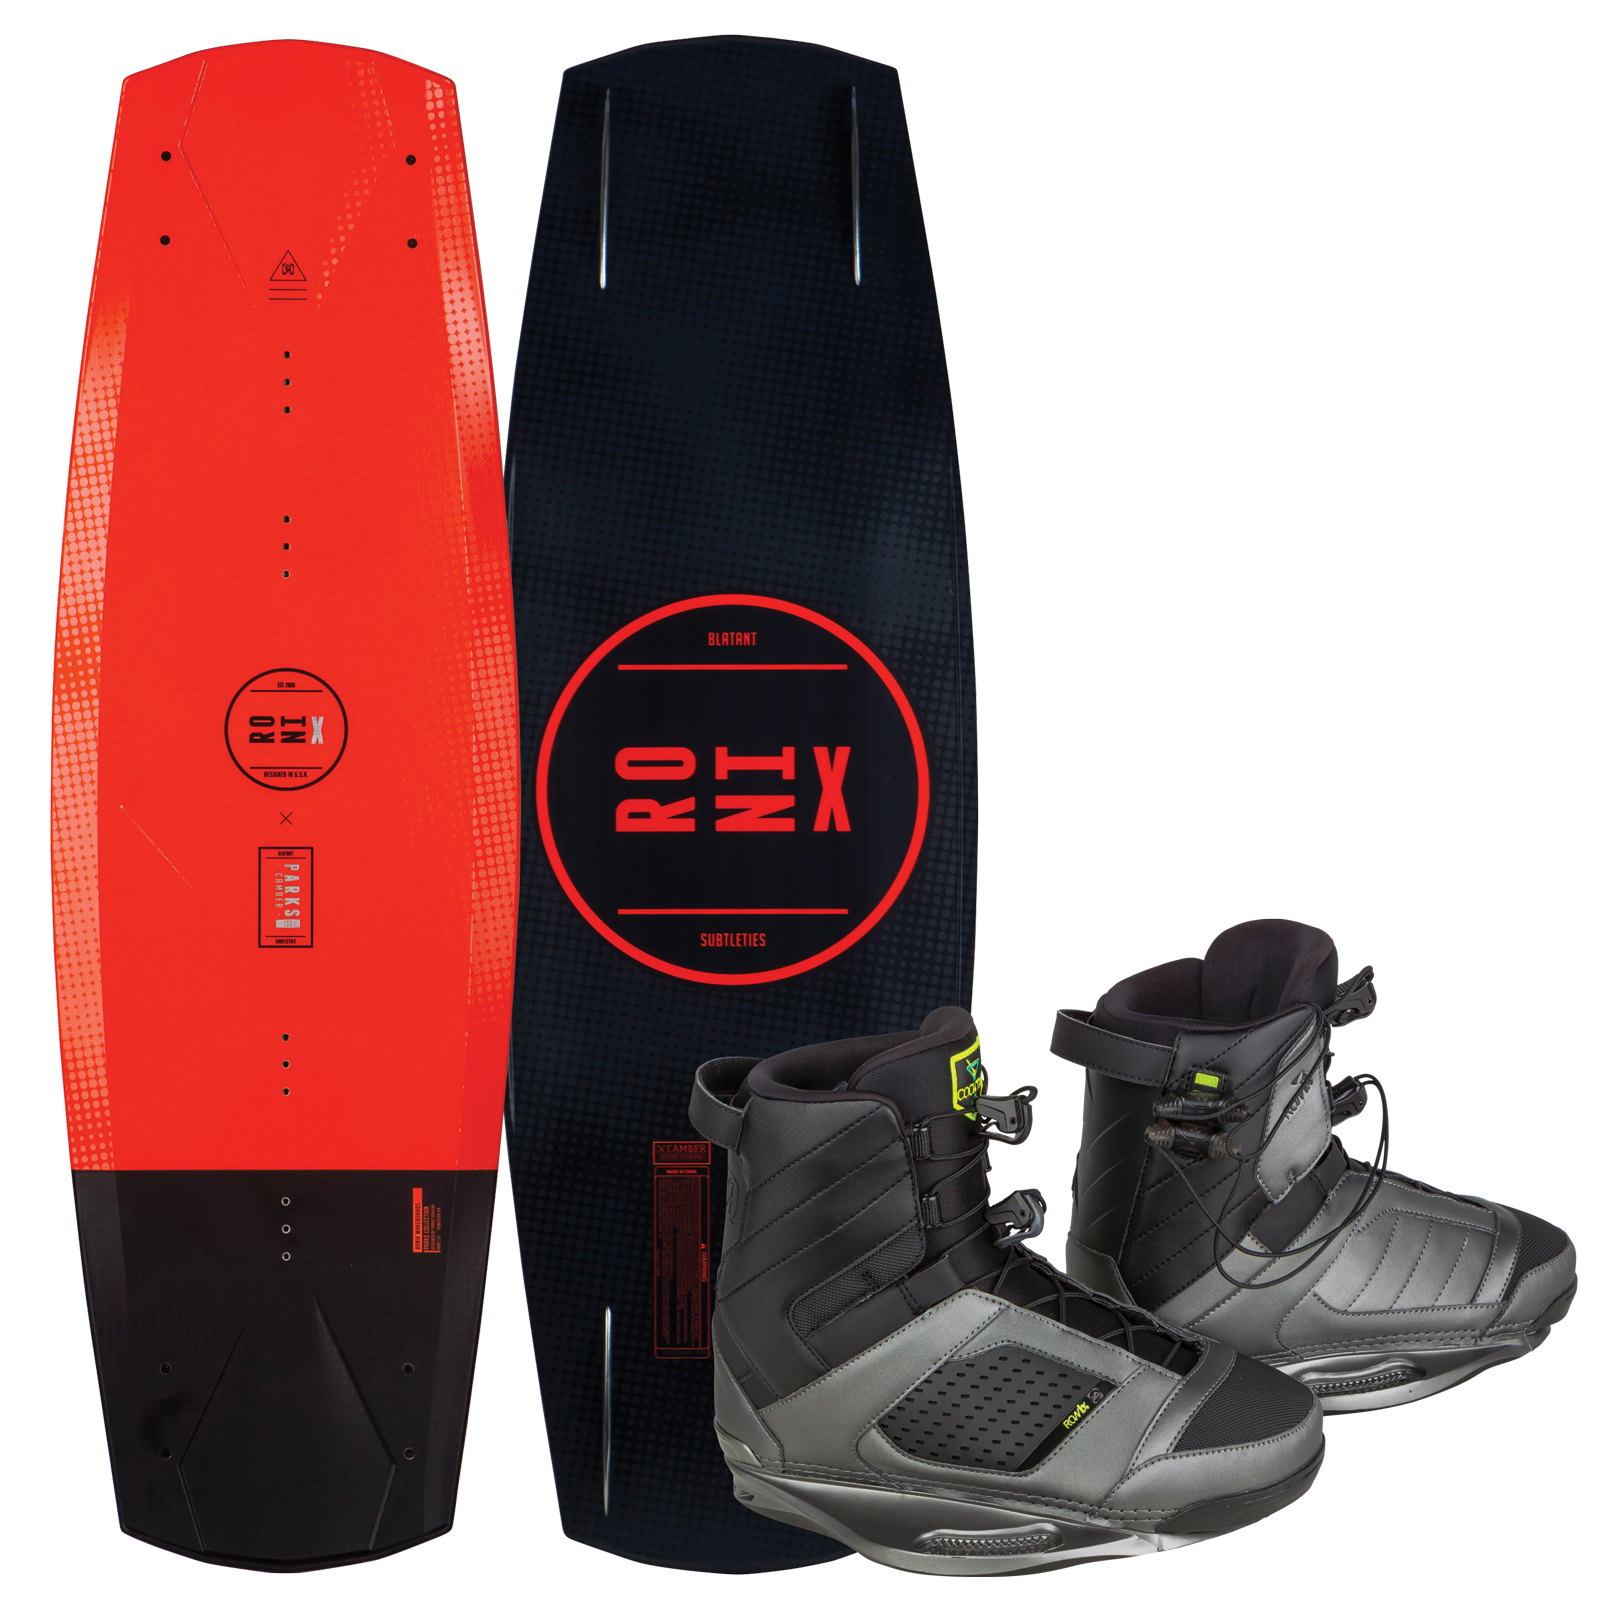 PARKS MODELLO 144 W/ COCKTAIL PACKAGE RONIX 2017